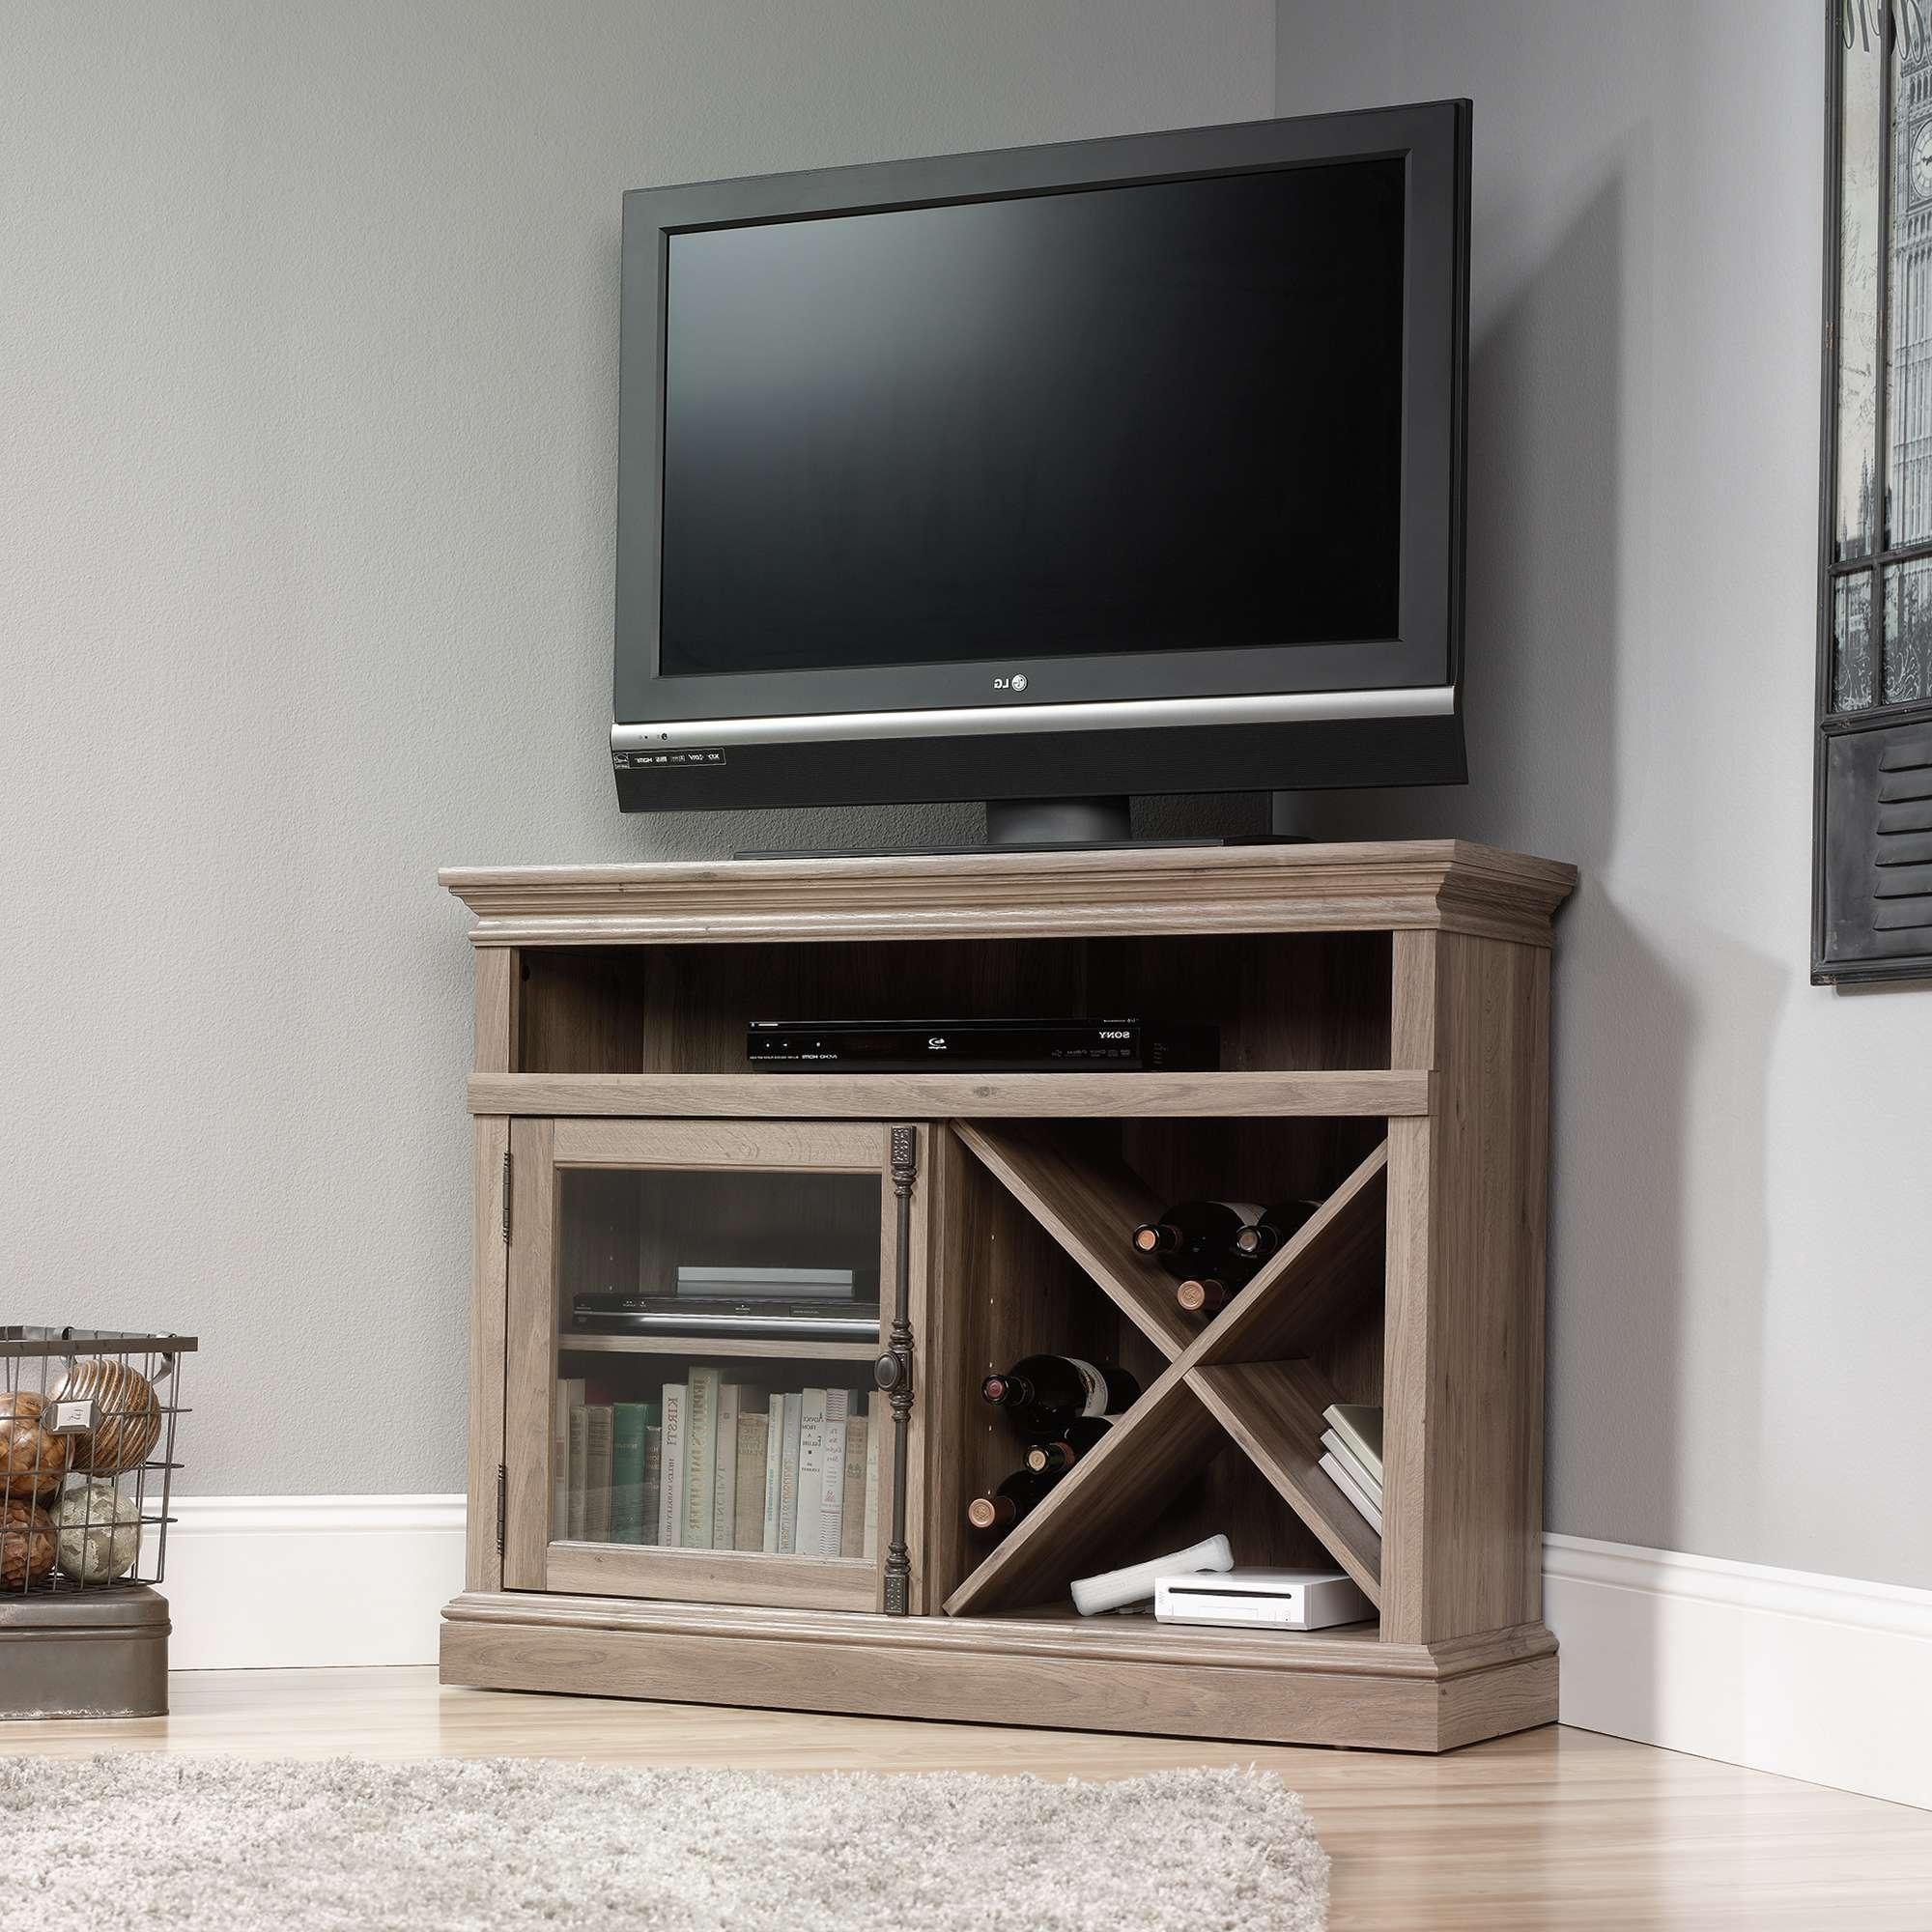 Barrister Lane | Corner Tv Stand | 414729 | Sauder With Regard To Cornet Tv Stands (View 7 of 15)